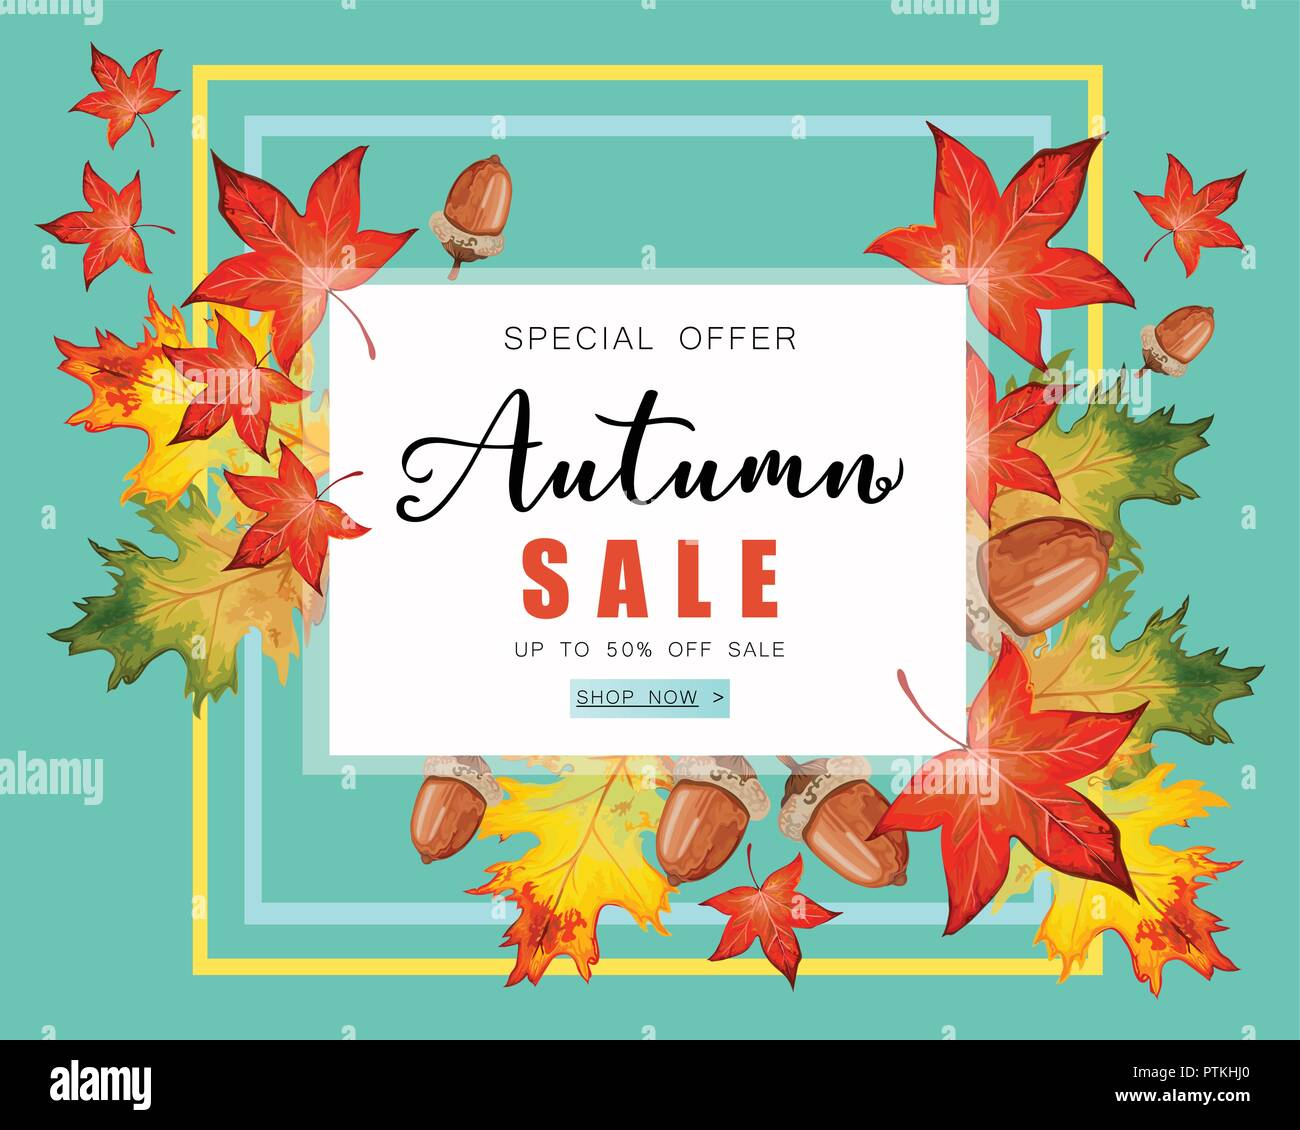 banner for autumn sale with fall leaves stock vector art